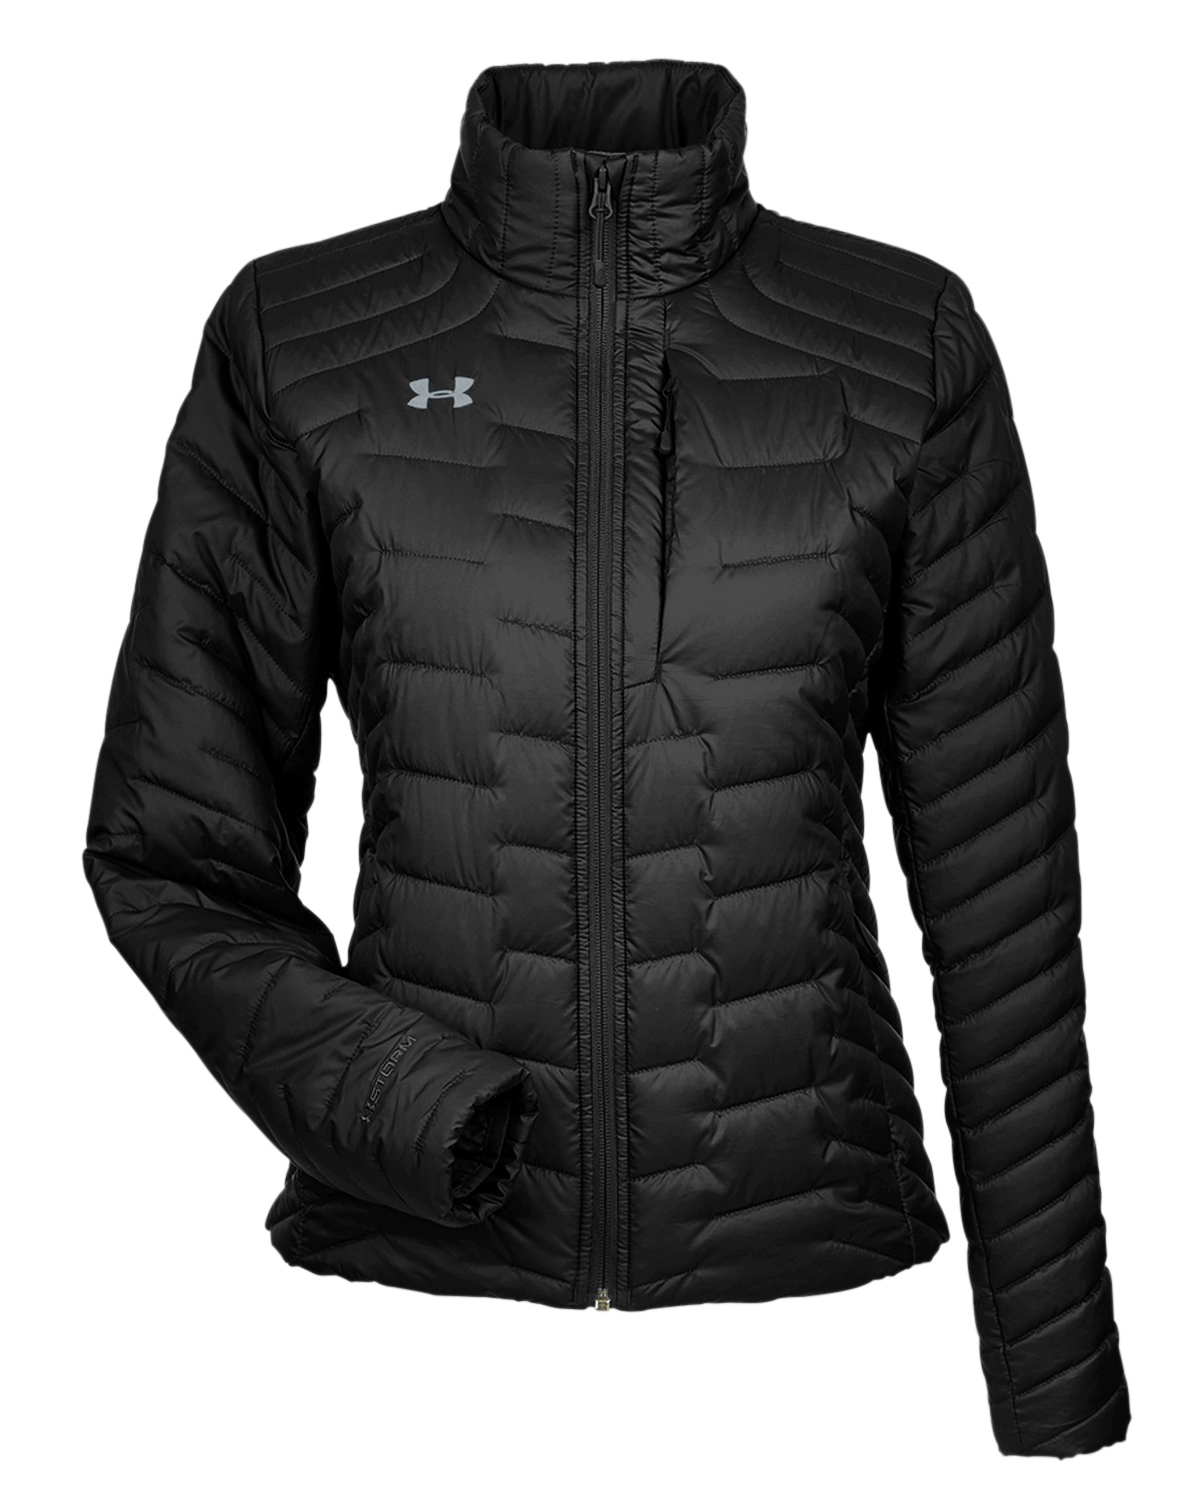 Under Armour 1317228 - Ladies' Corporate Reactor Jacket